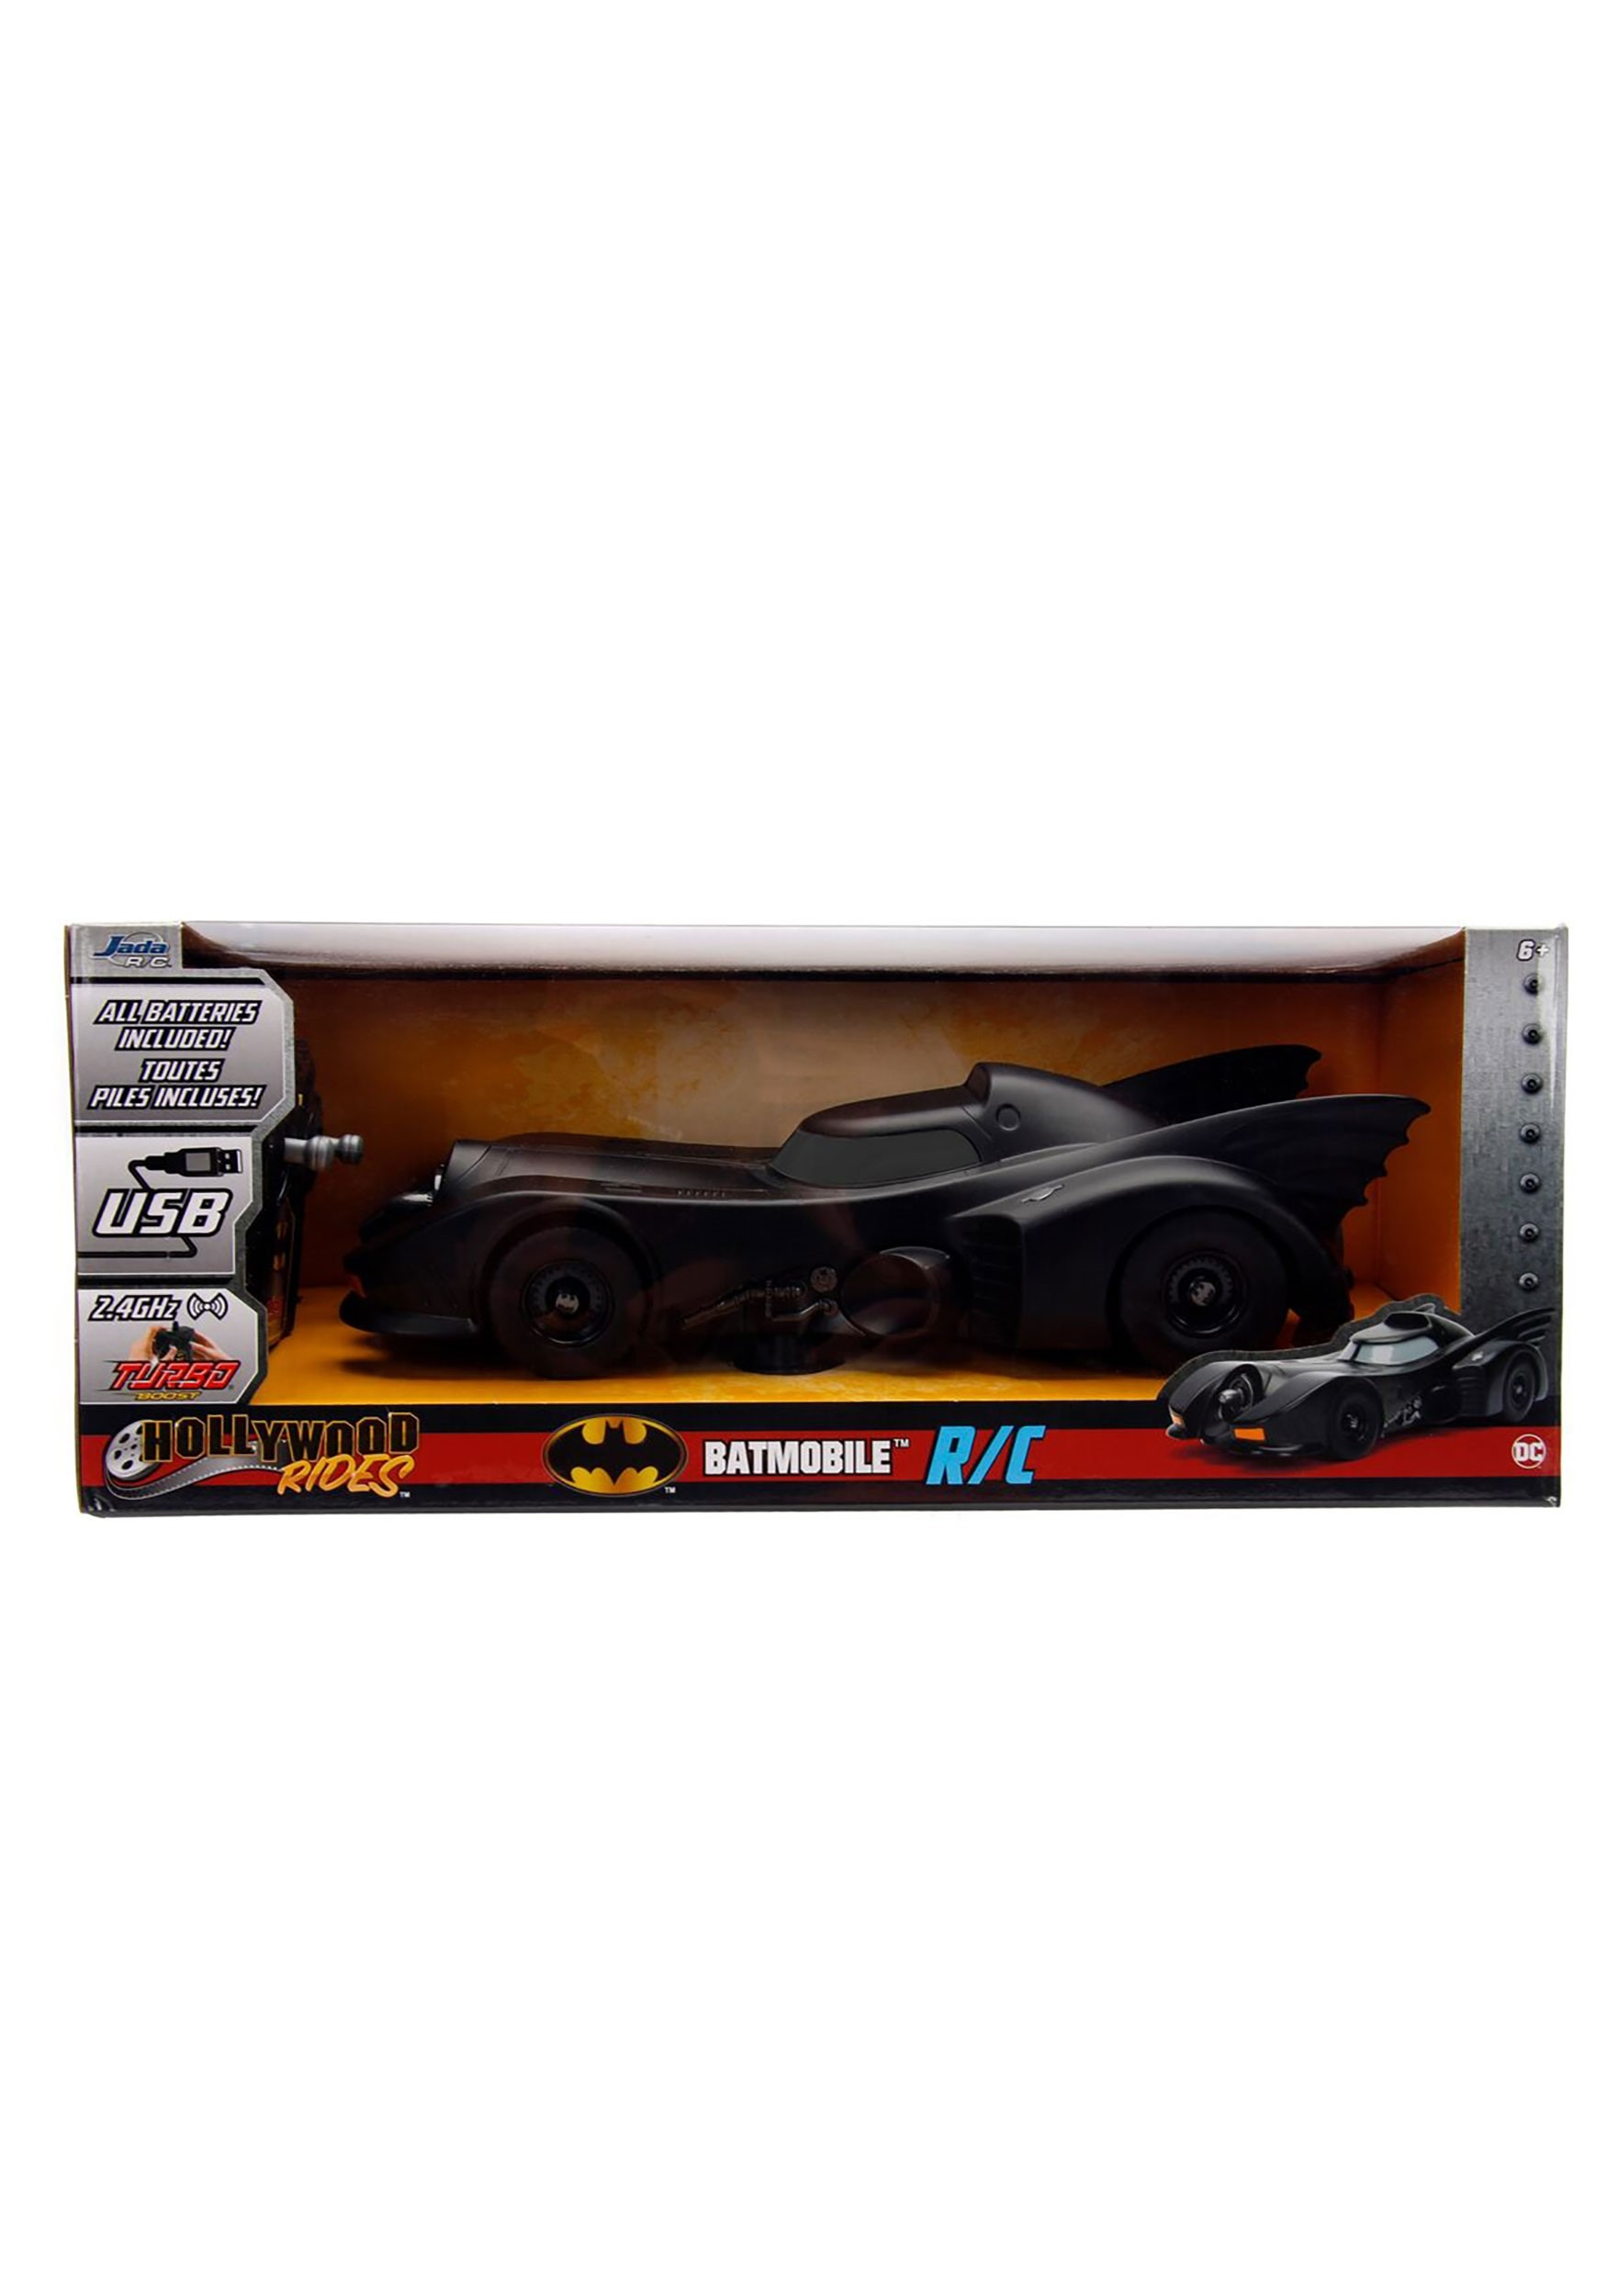 1:16 R/C 1989 Batman Batmobile